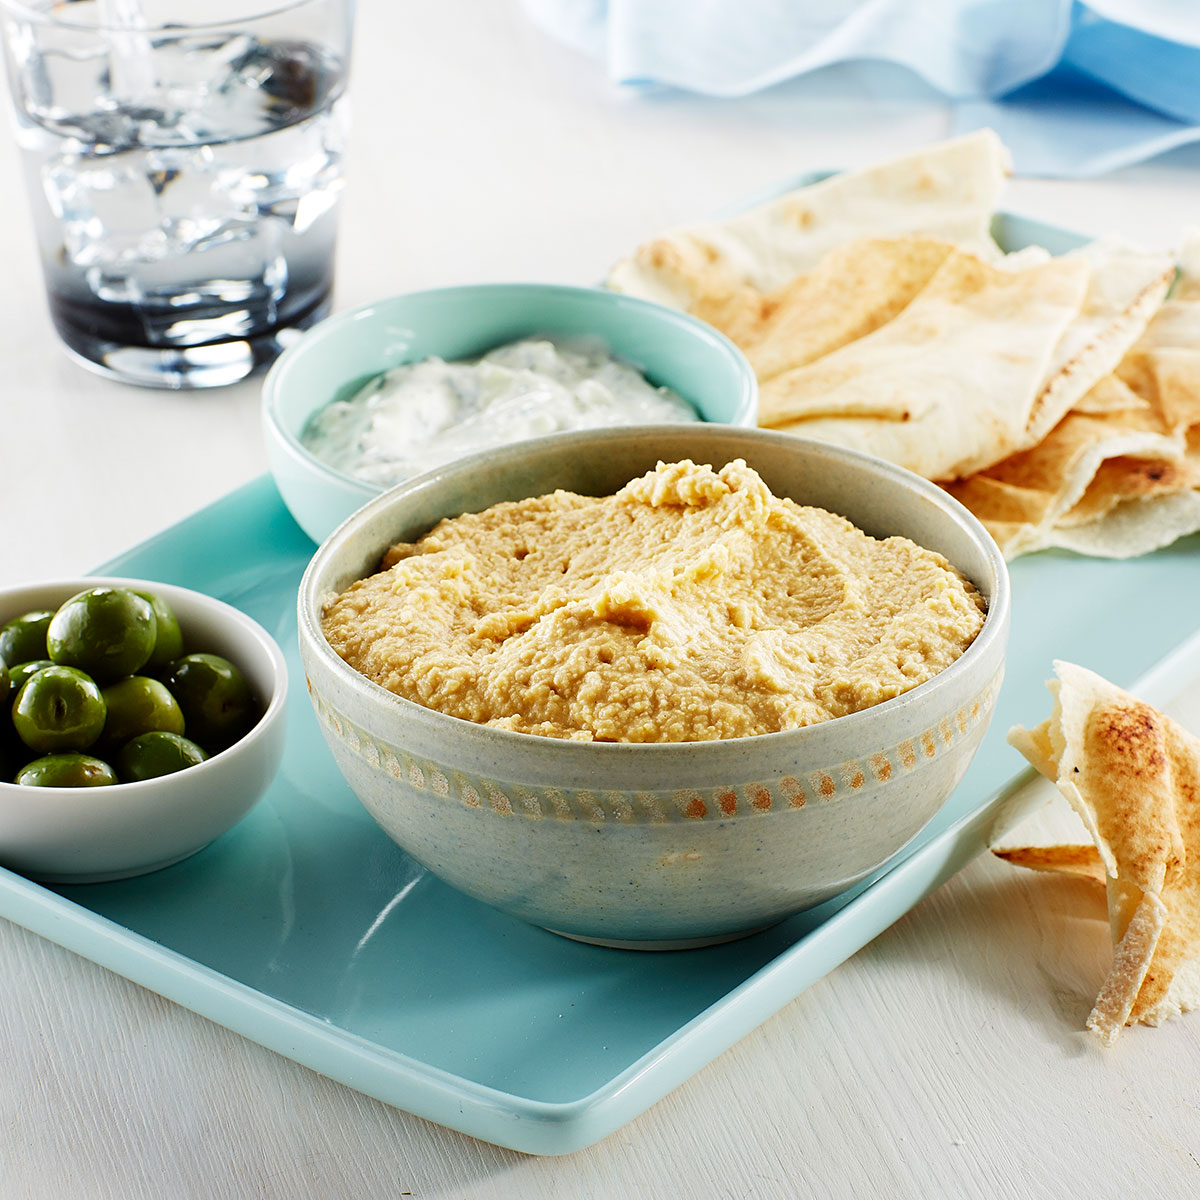 Homemade Hummus made Easy